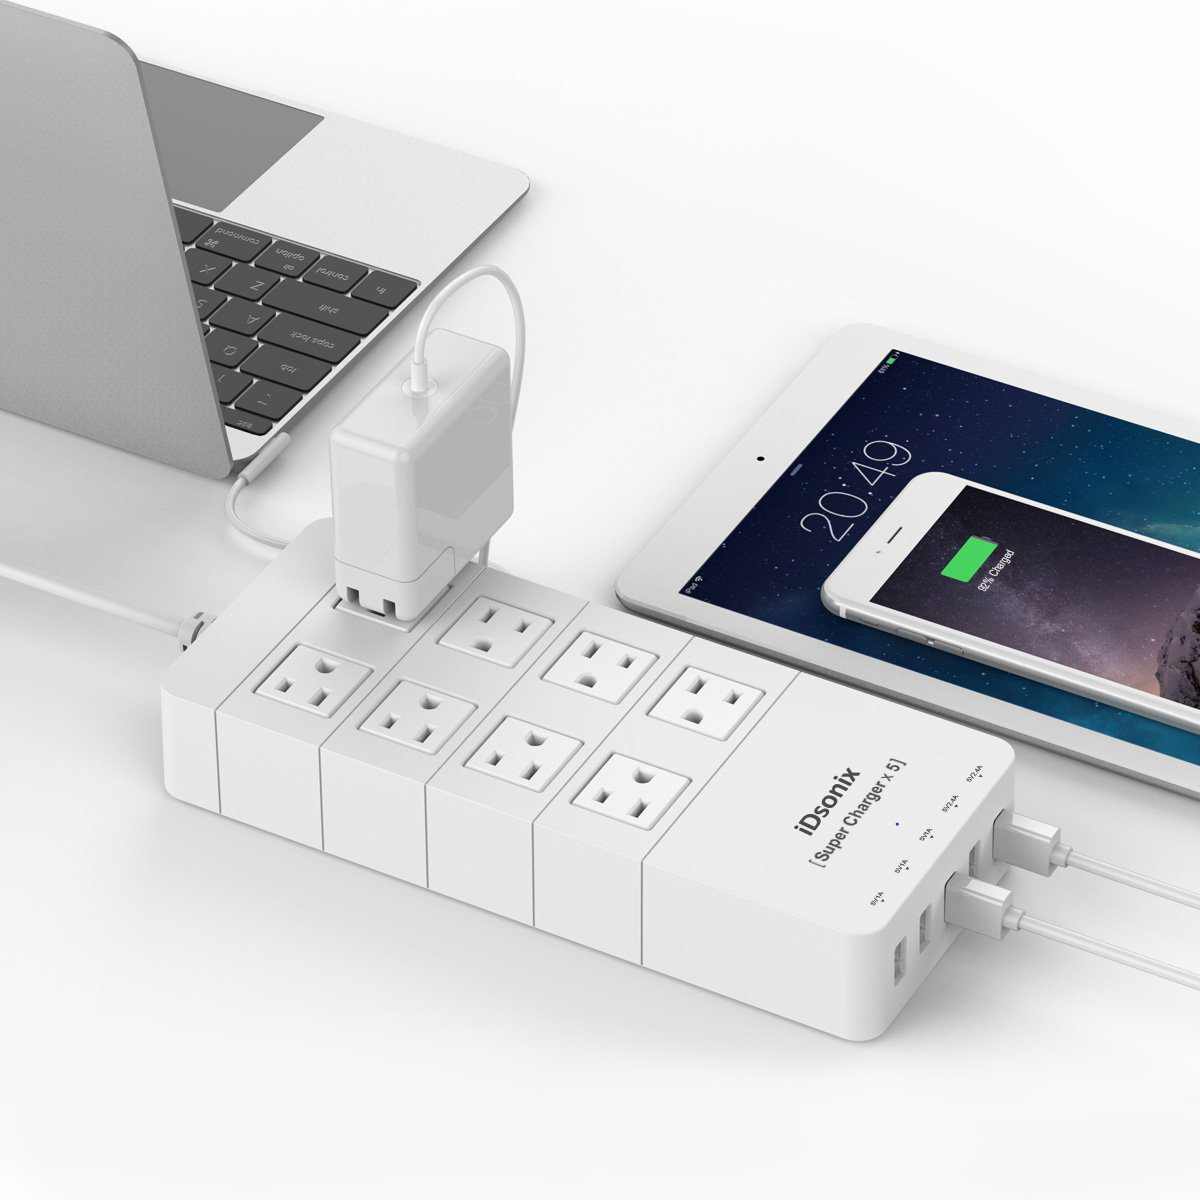 iDsonix 8 Power Socket Outlets with 5V 2.4A 5-Port Smart USB Charging Ports 5ft Cord Built-in Surge Protector and Intelligent Chip to Secure Protections and Automatic Current-Detecting Function